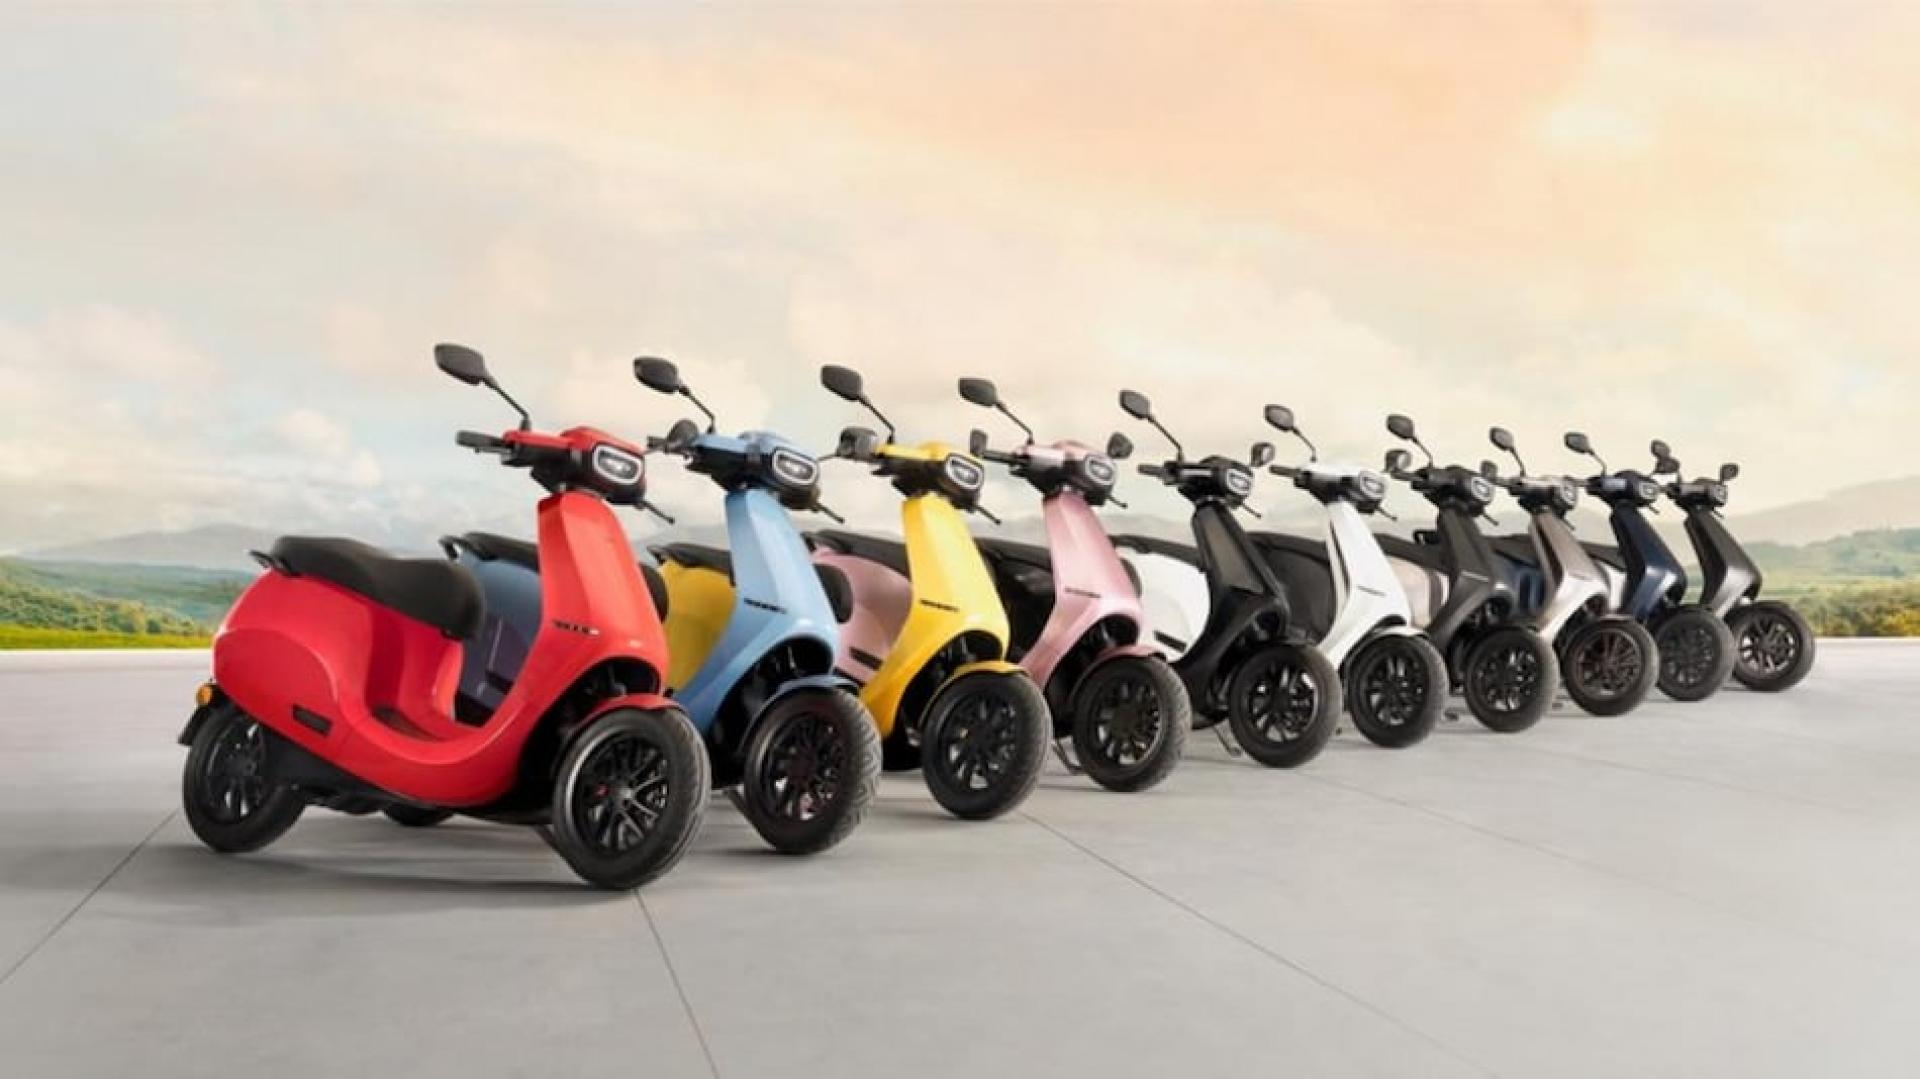 Electric vs Petrol Scooters: which is the smarter choice?